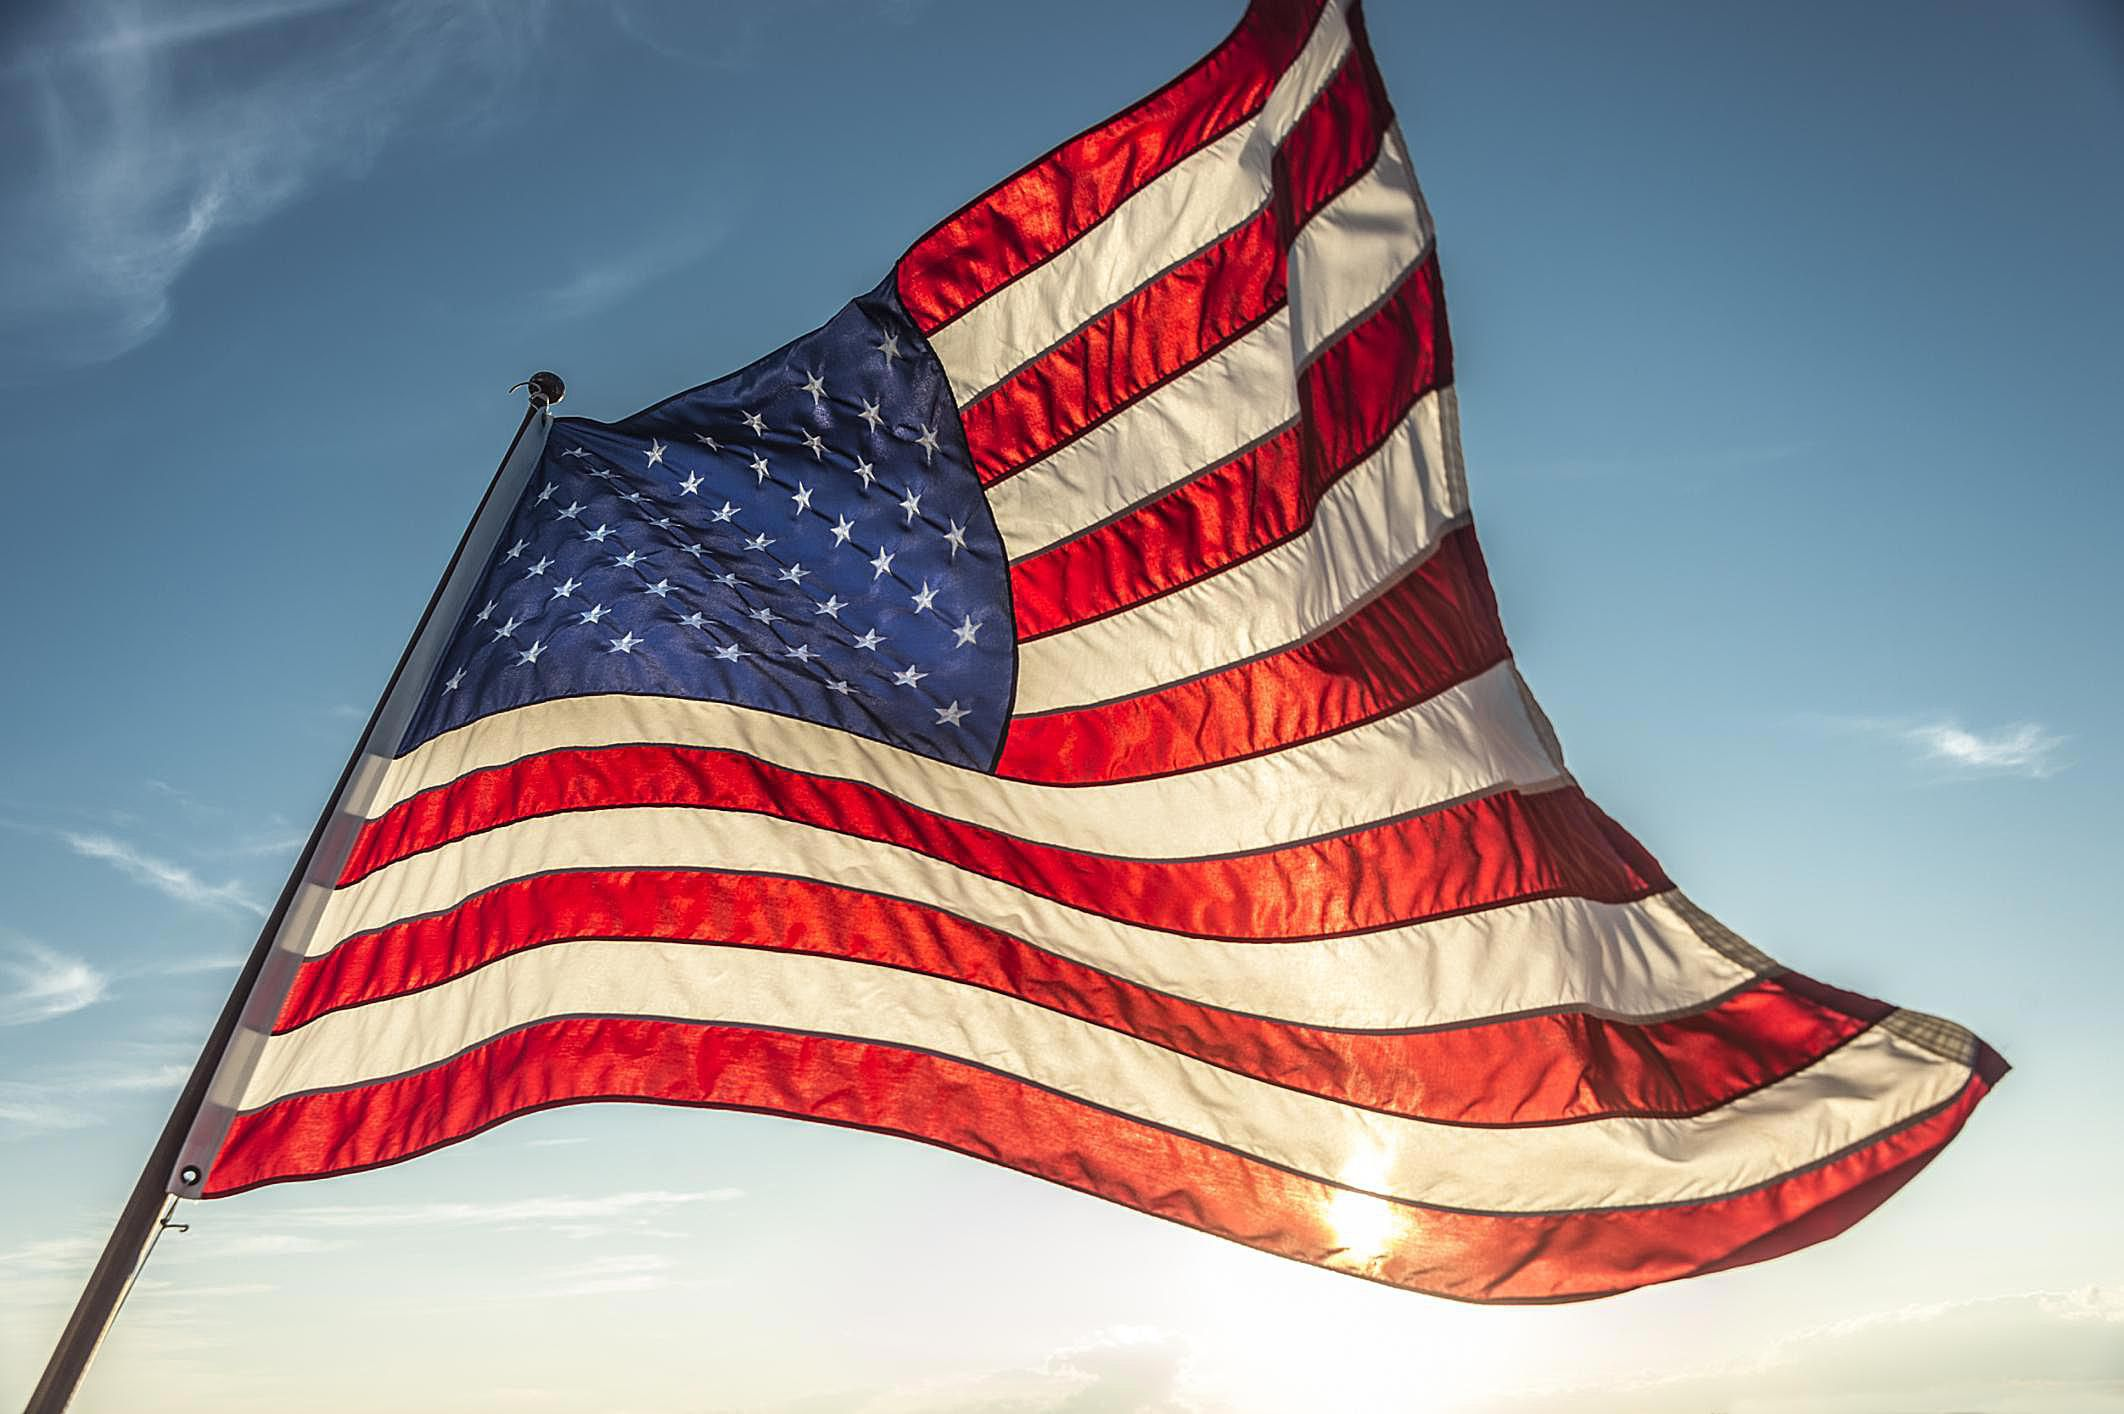 American Flag Etiquette (Care and Display Guidelines)